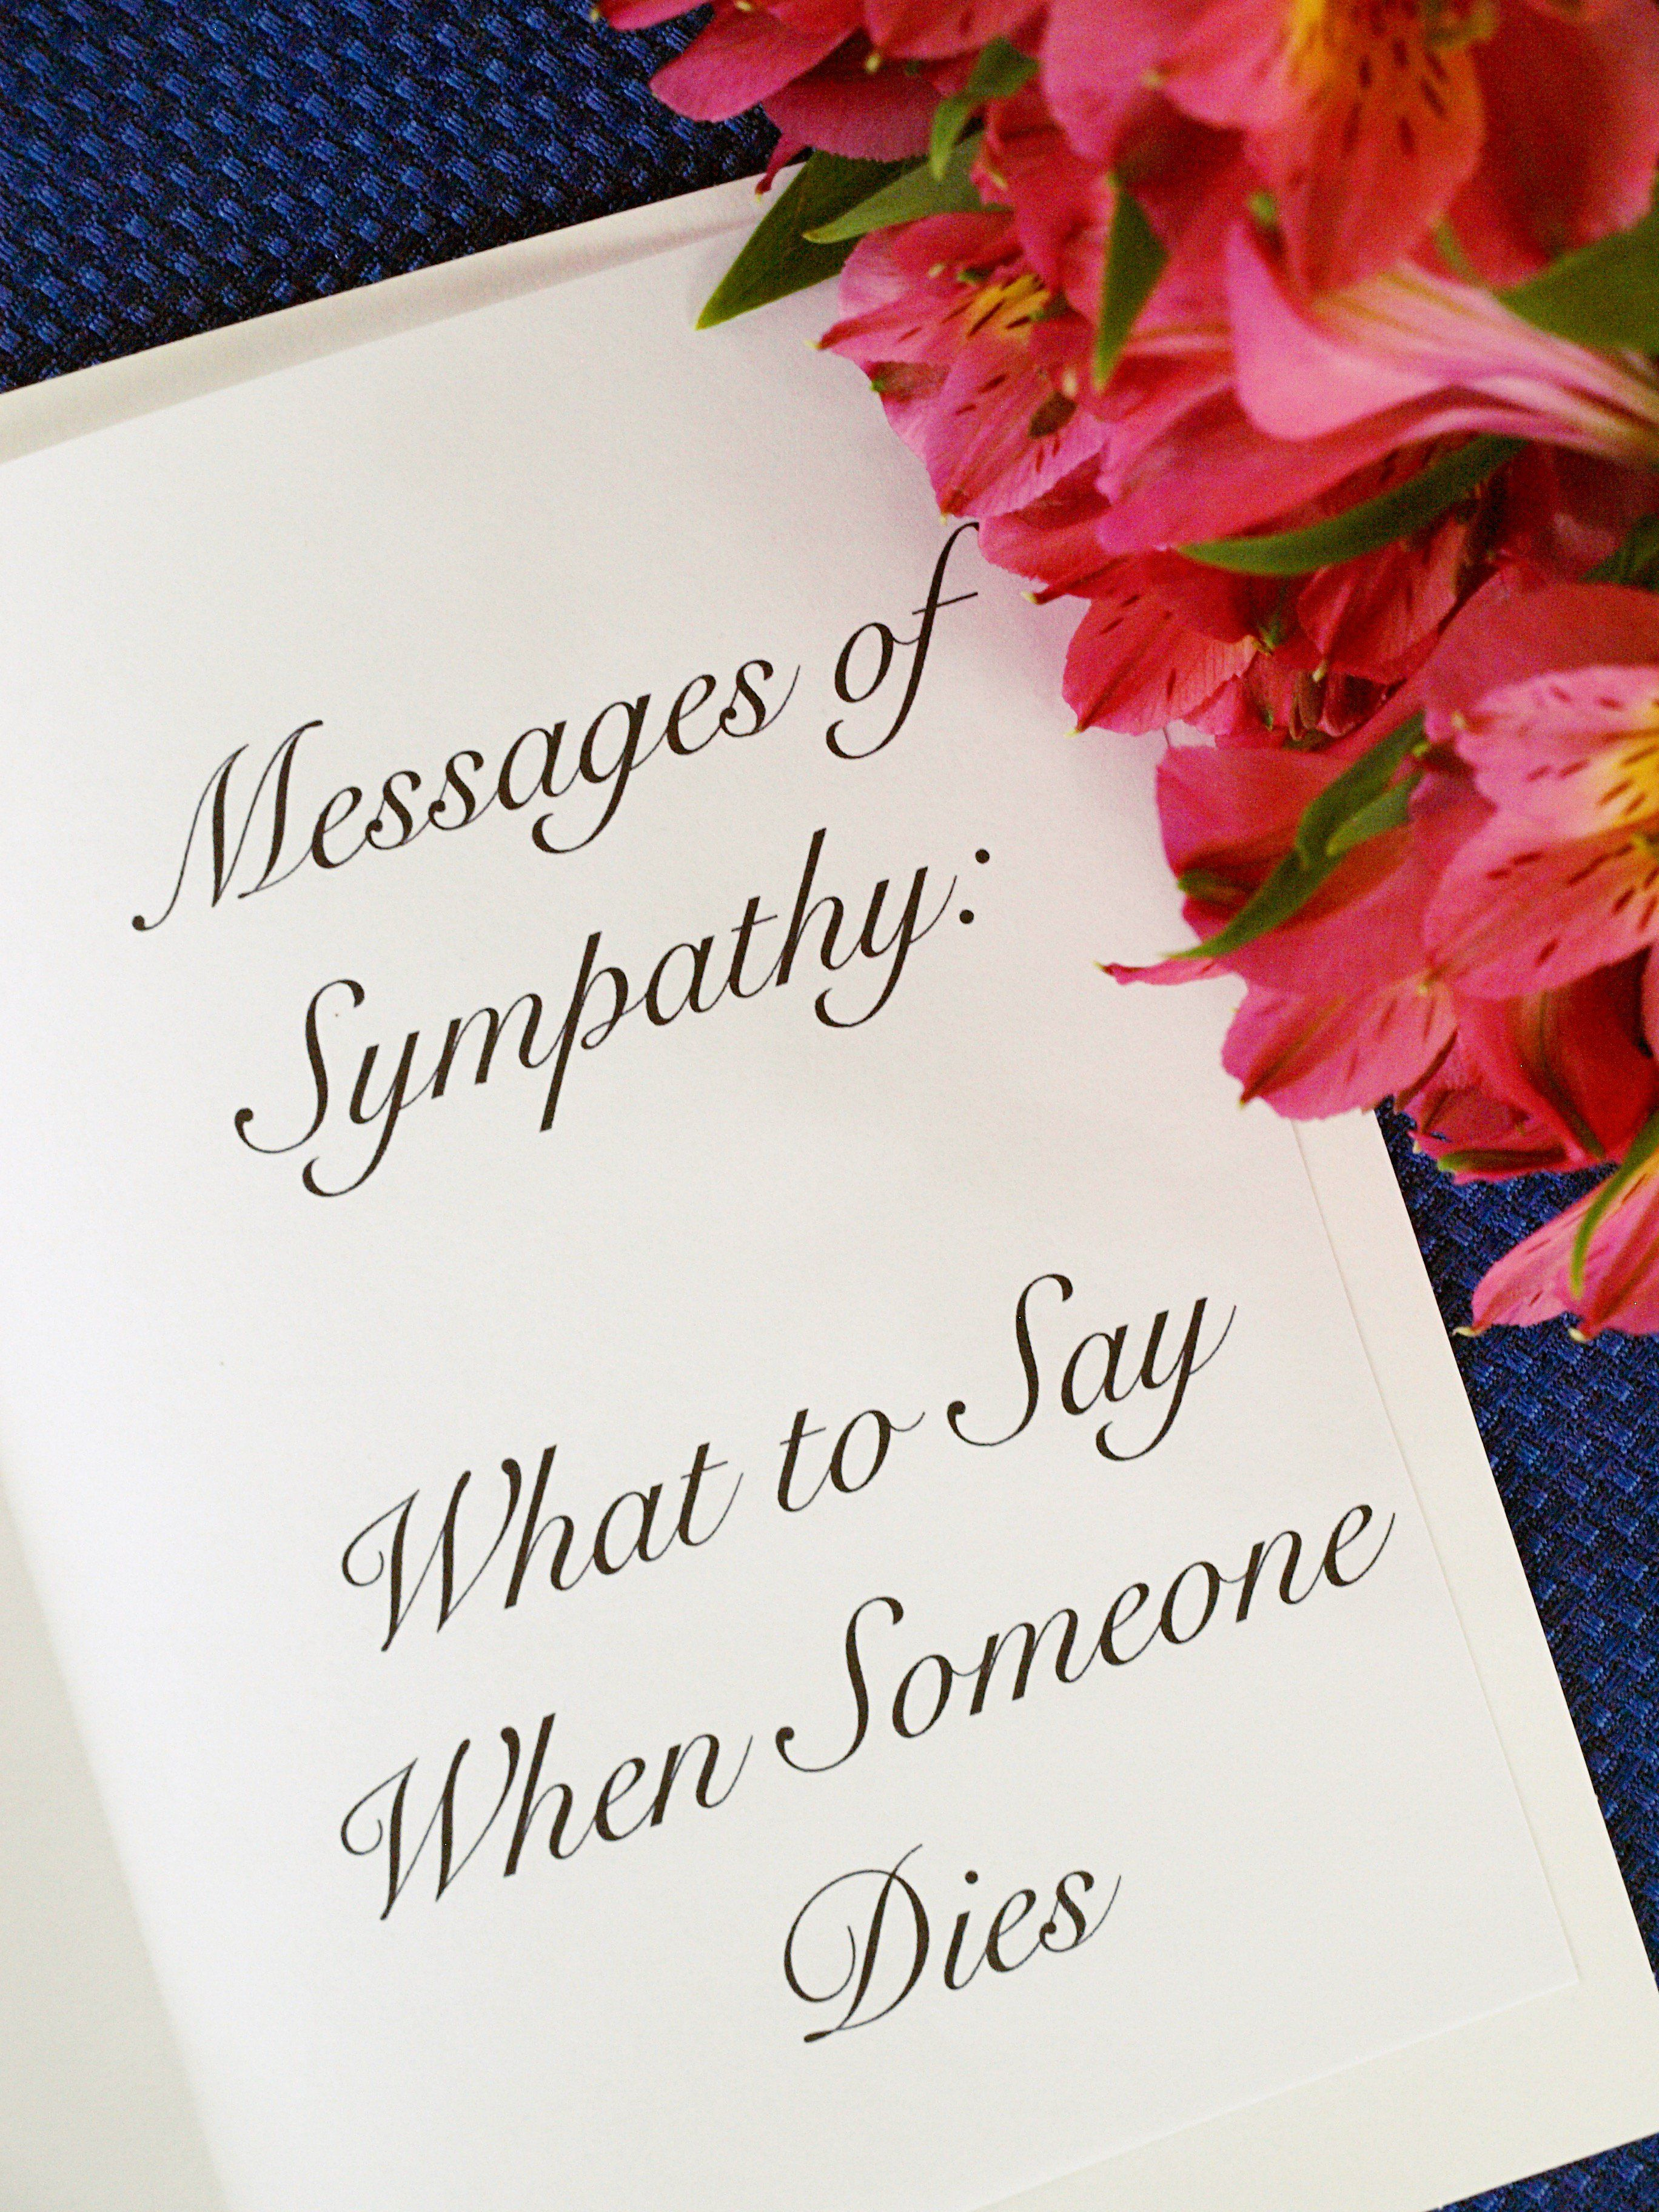 Messages of sympathy what to say when someone dies words of messages of sympathy what to say when someone dies kristyandbryce Choice Image